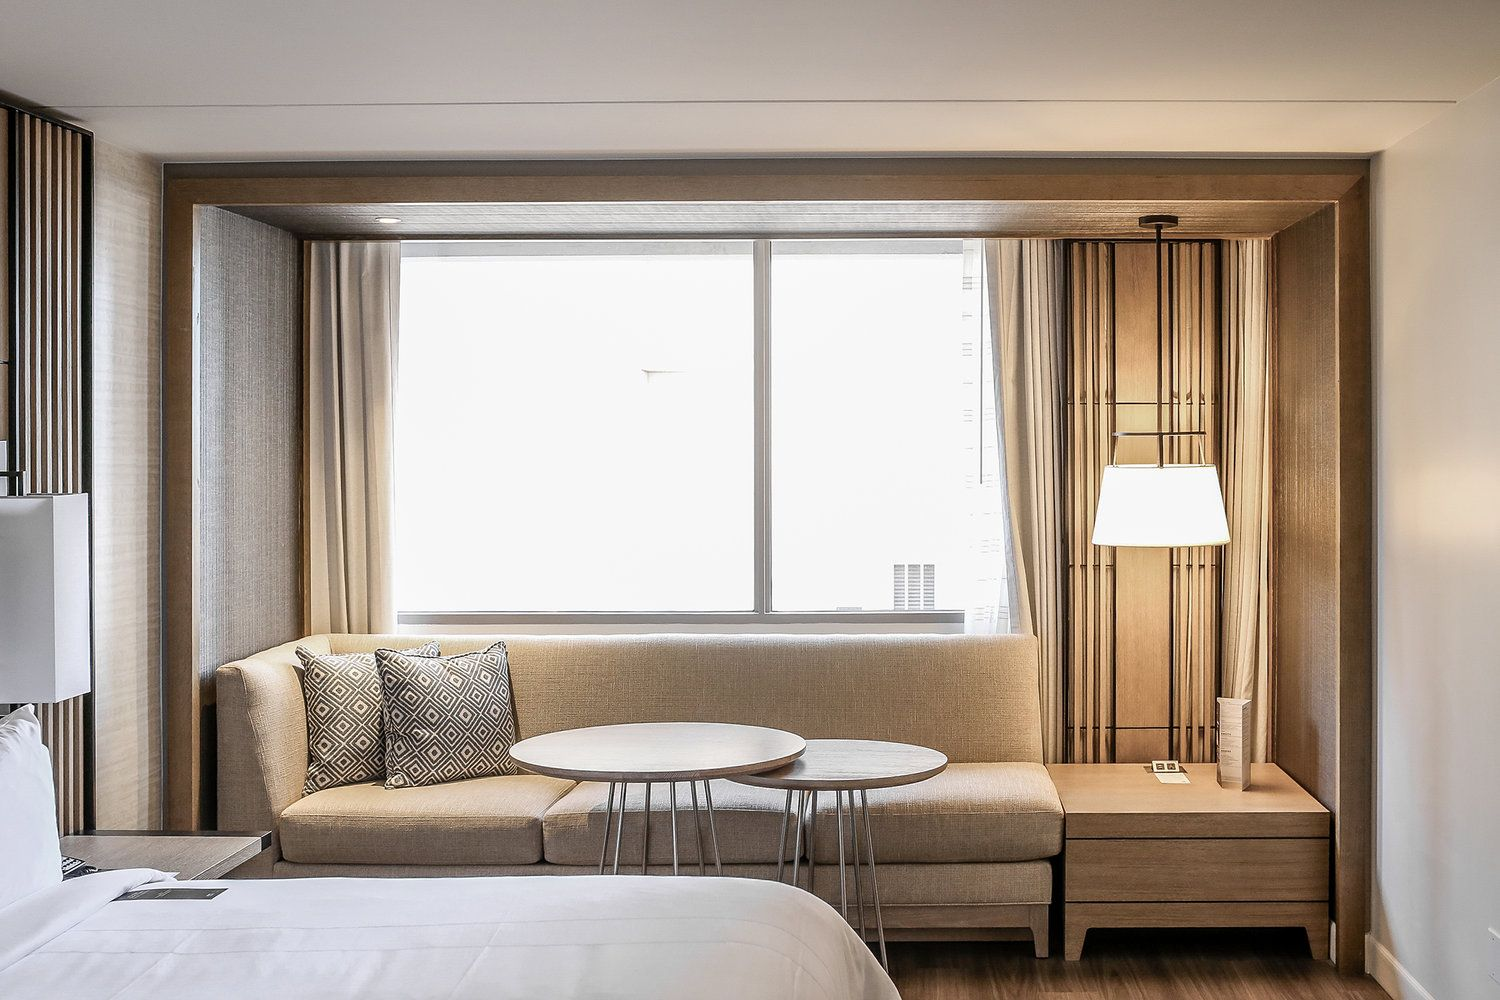 Marriott: The Live Beta Hotel experience | Room, Modern and Walls